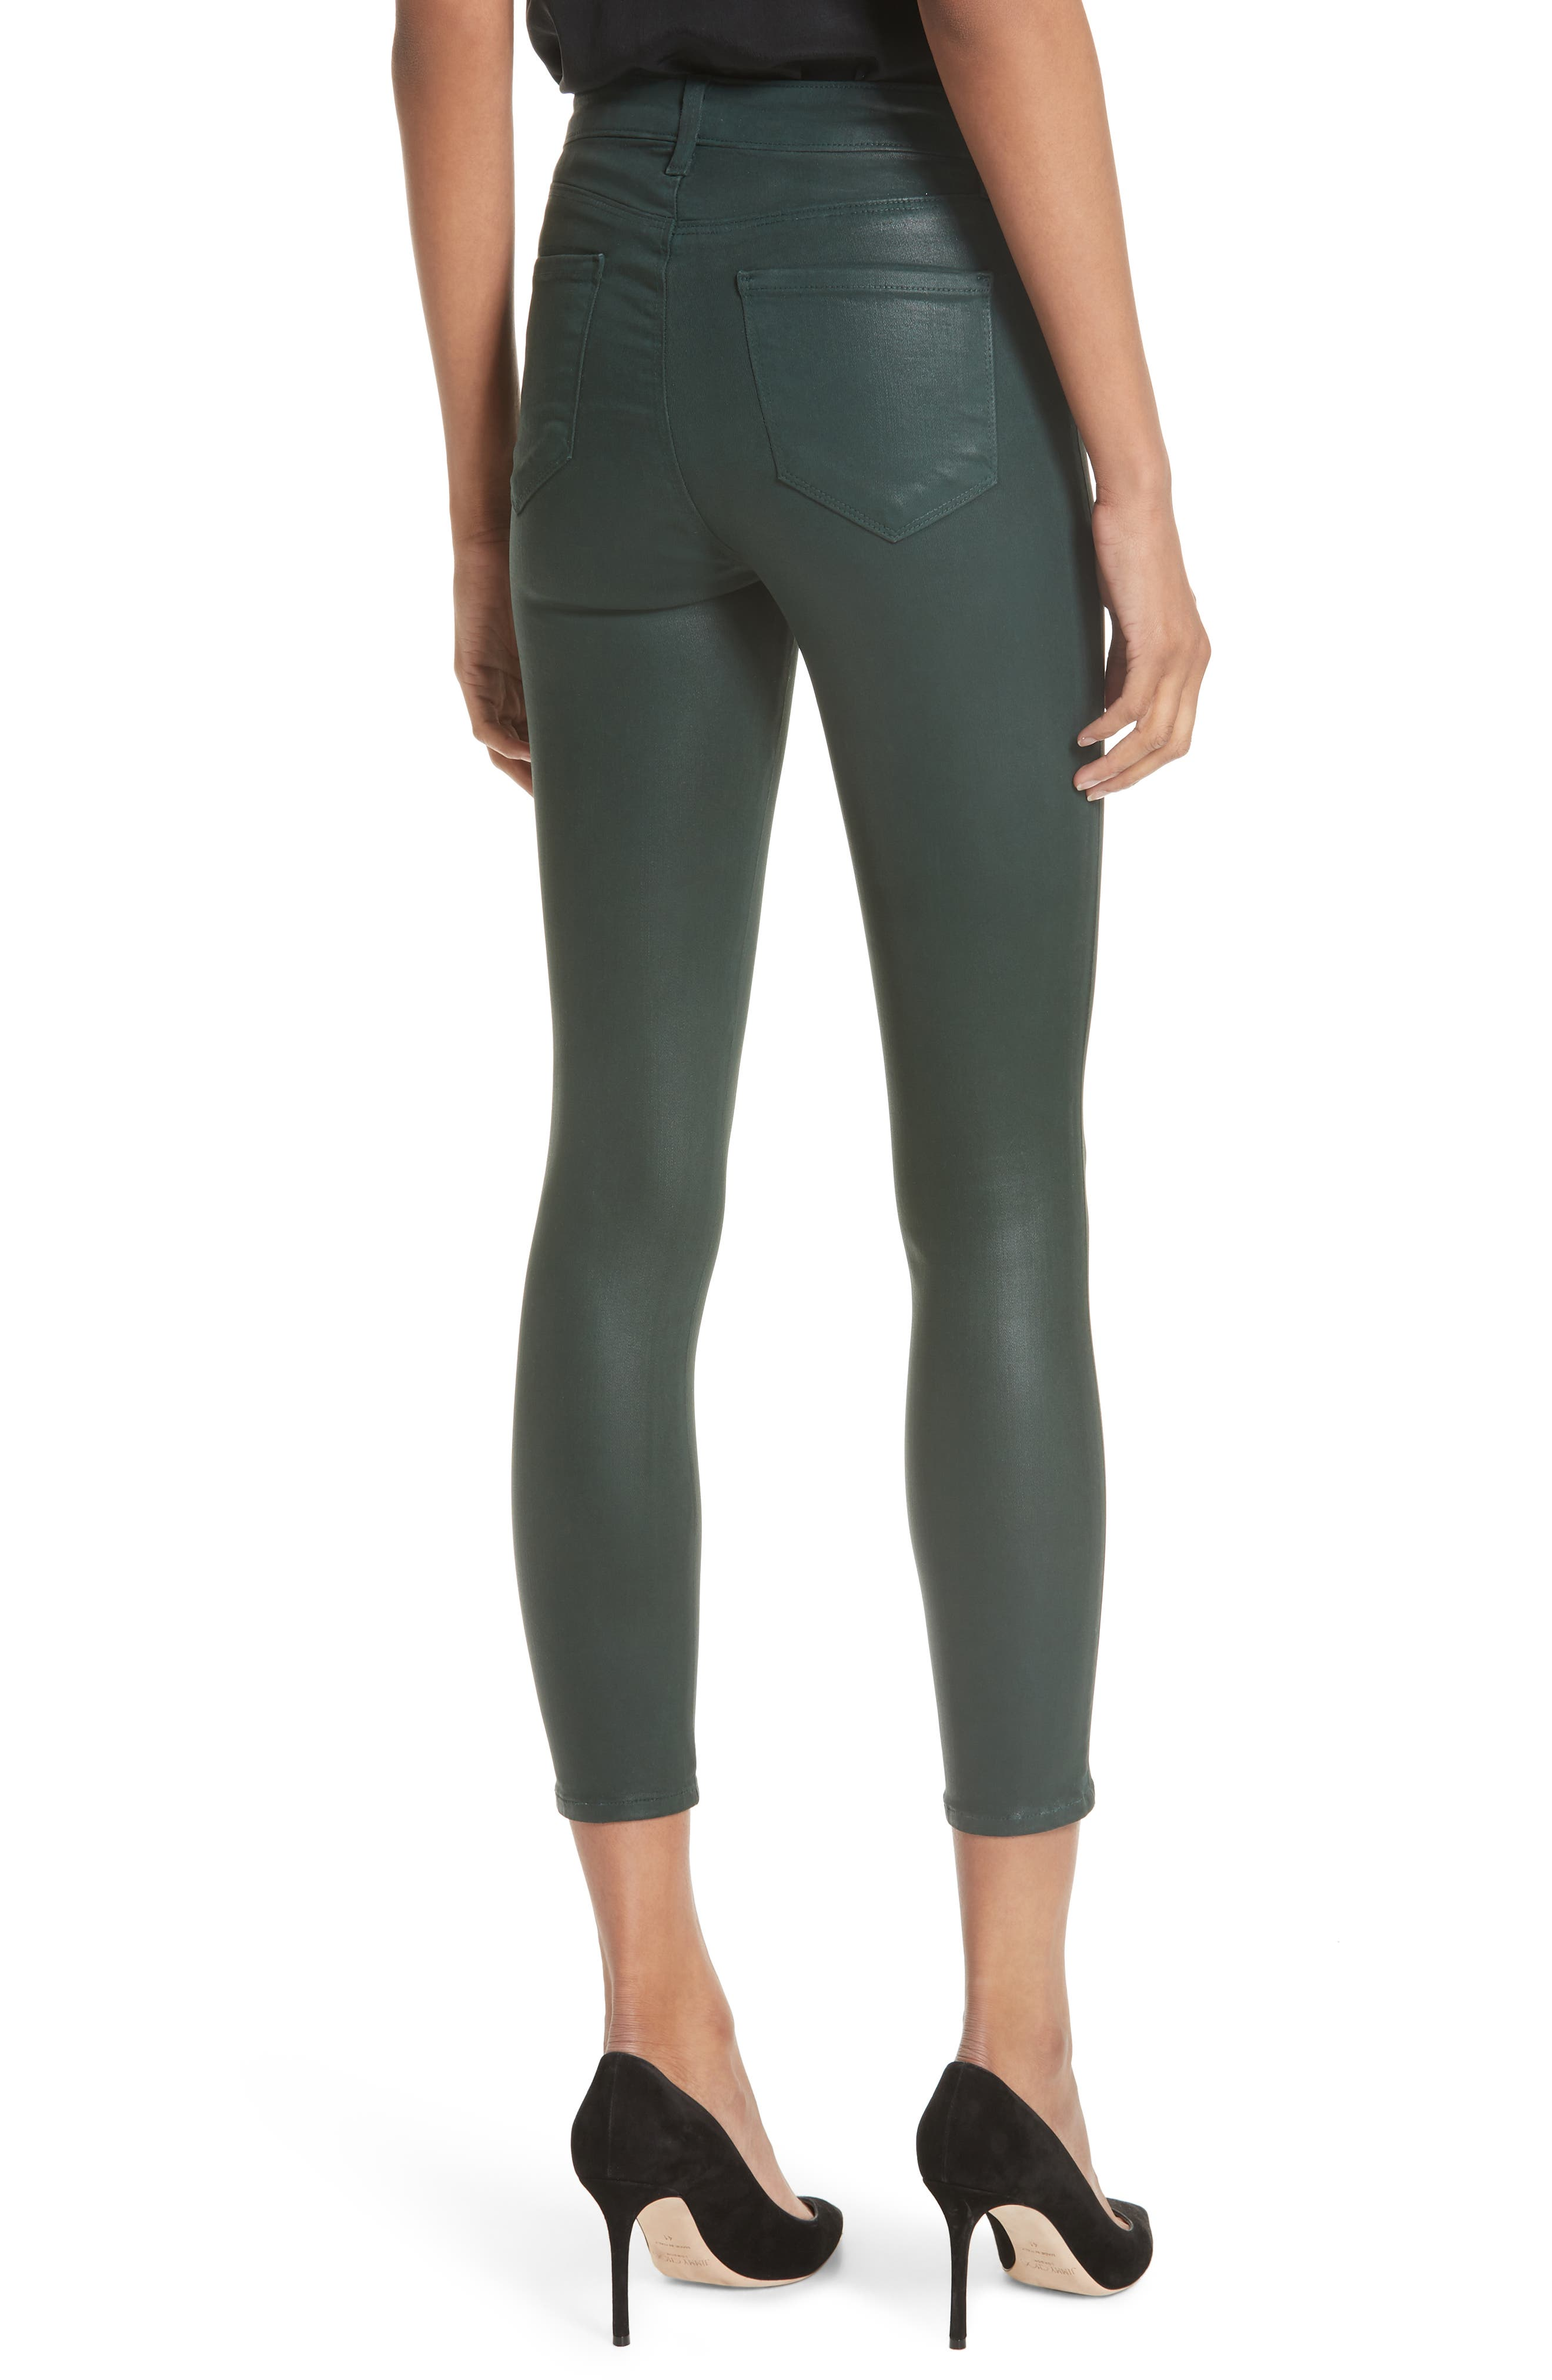 L'AGENCE,                             Margot Coated Crop Skinny Jeans,                             Alternate thumbnail 2, color,                             EVERGREEN COATED